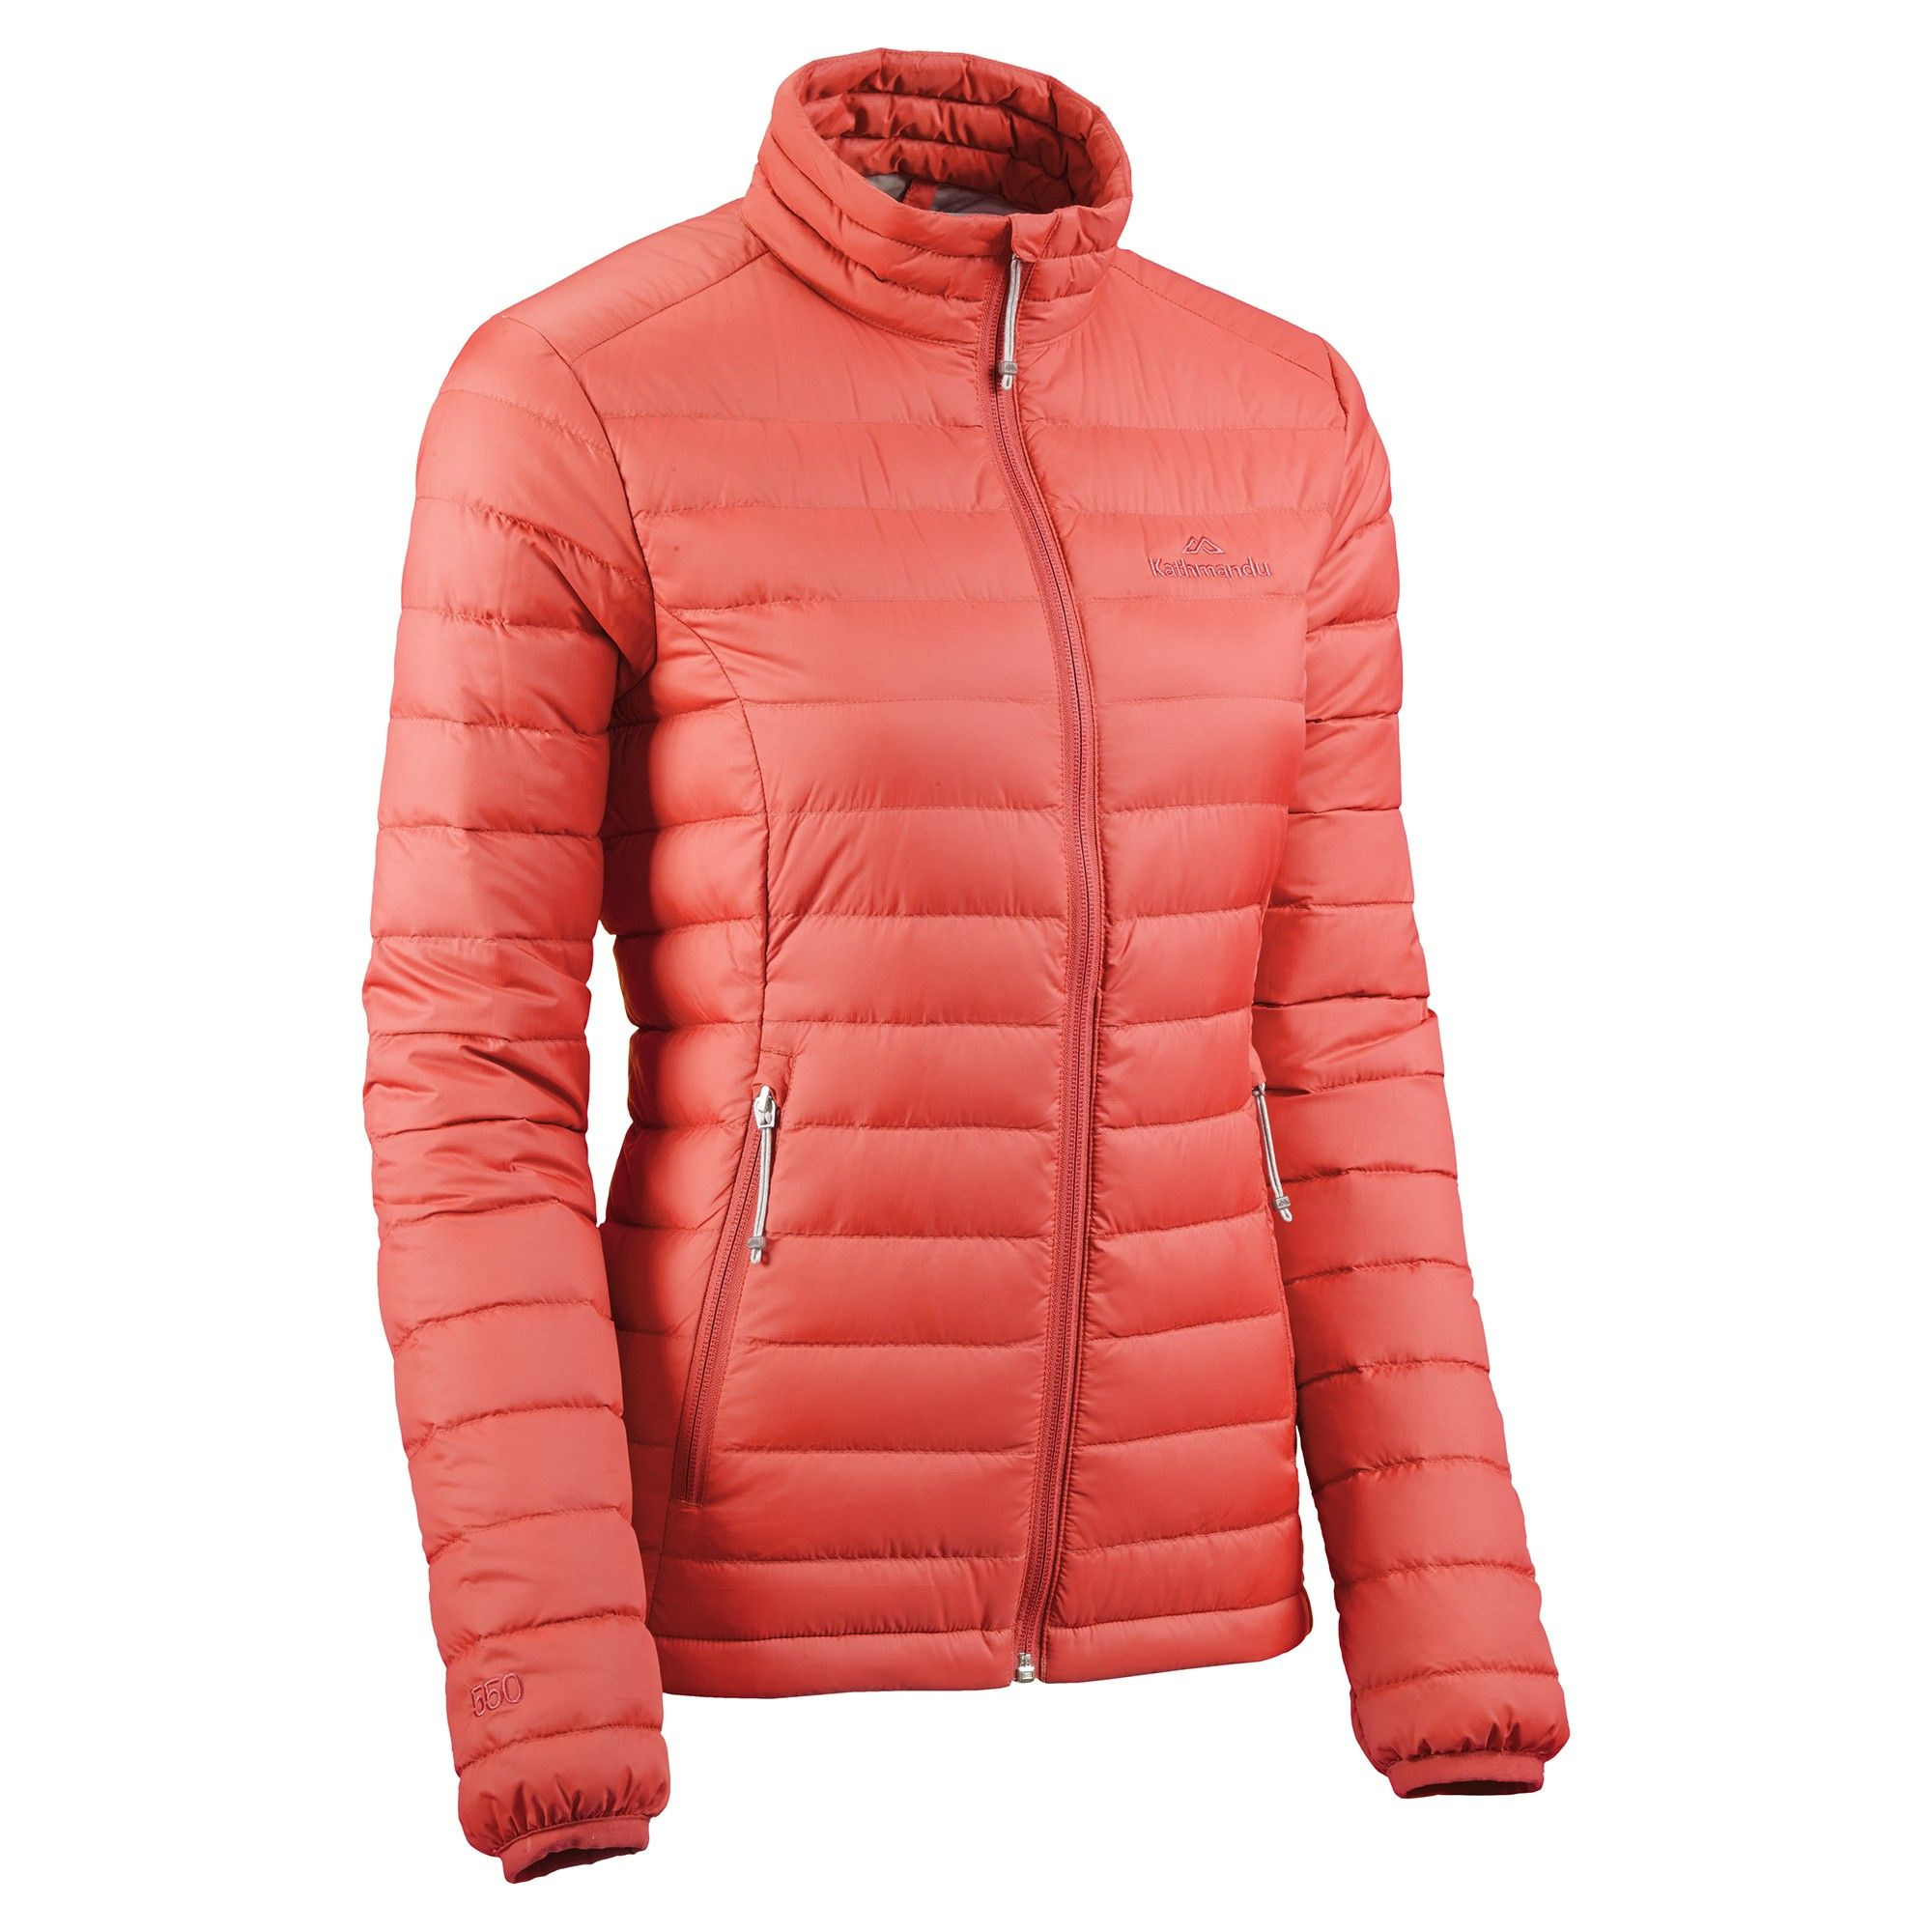 Buy Heli Women's Lightweight Down Jacket - Coral online at ...